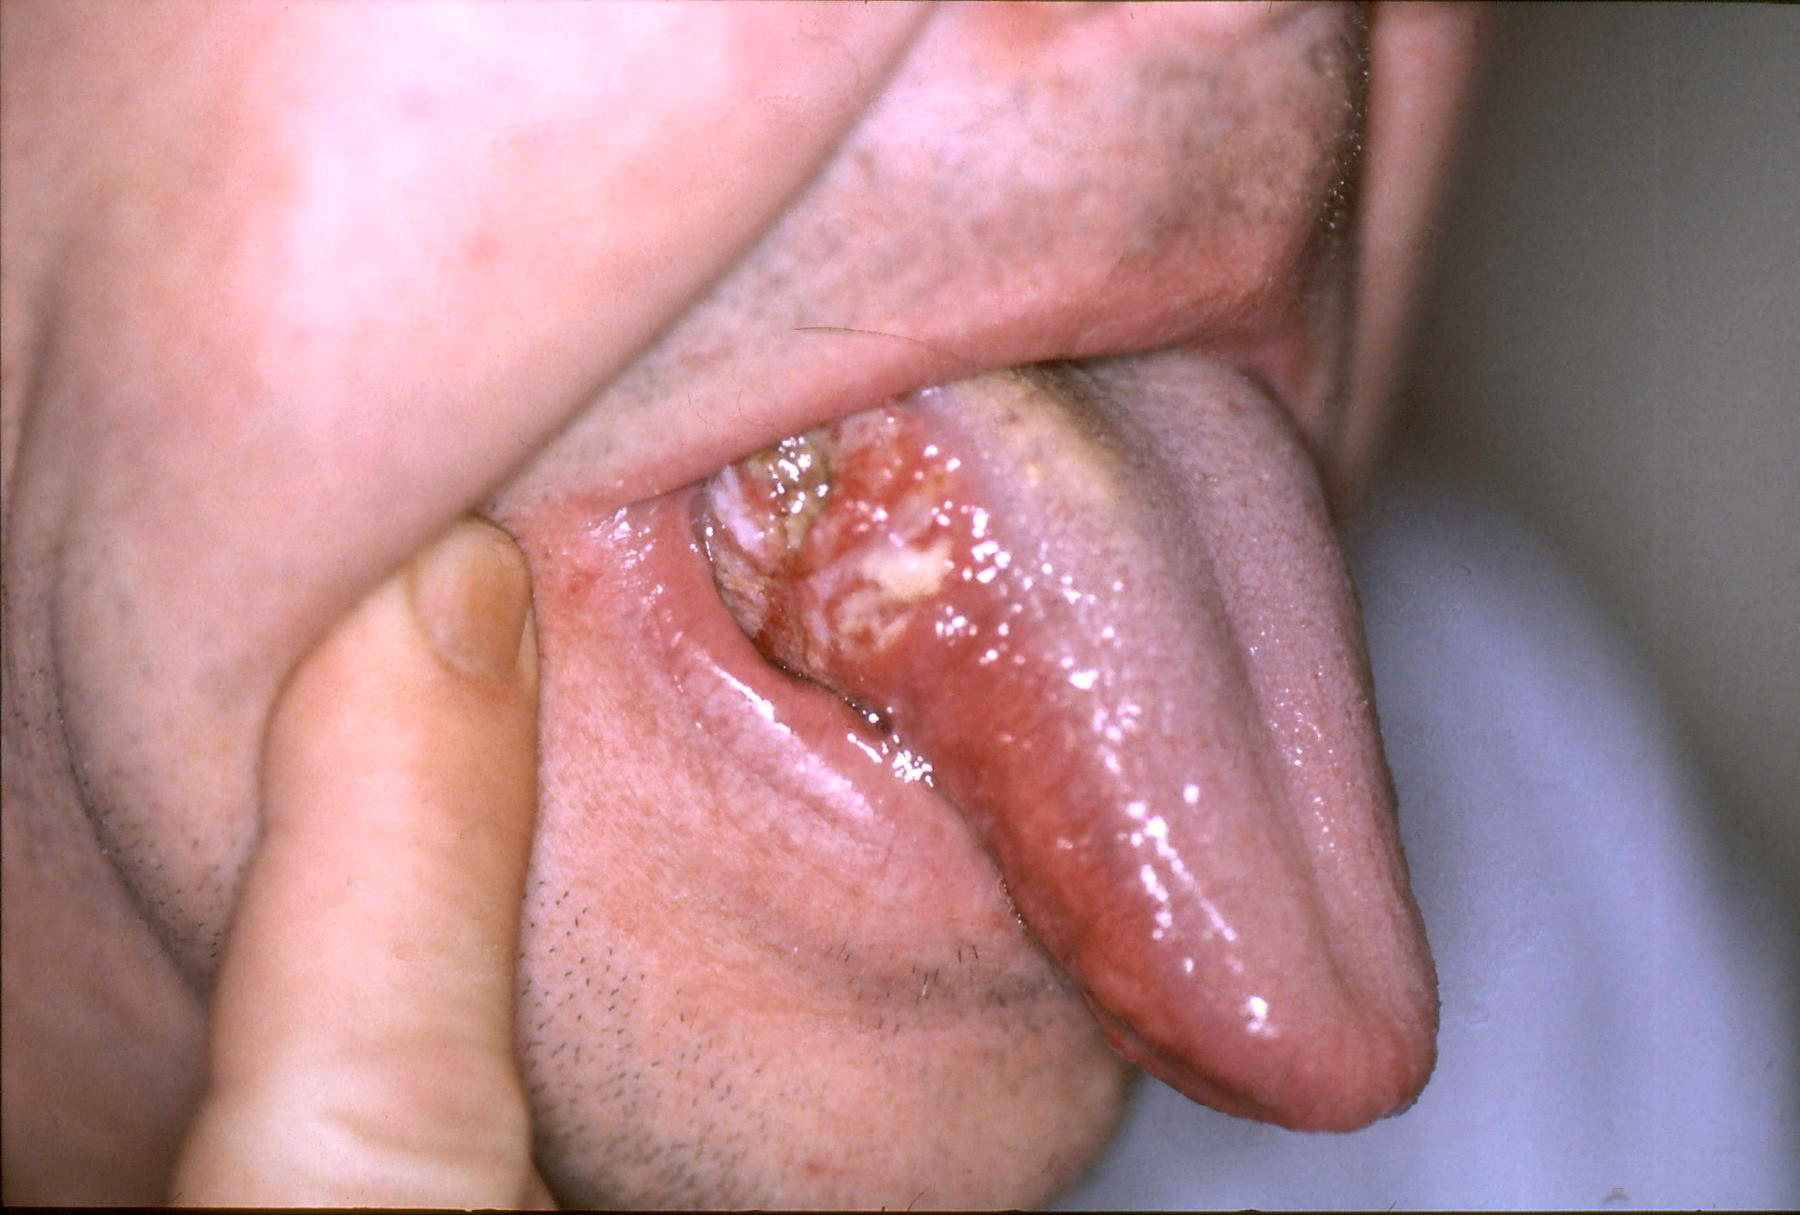 hpv on tongue how to treat cancer pulmonar etiologia